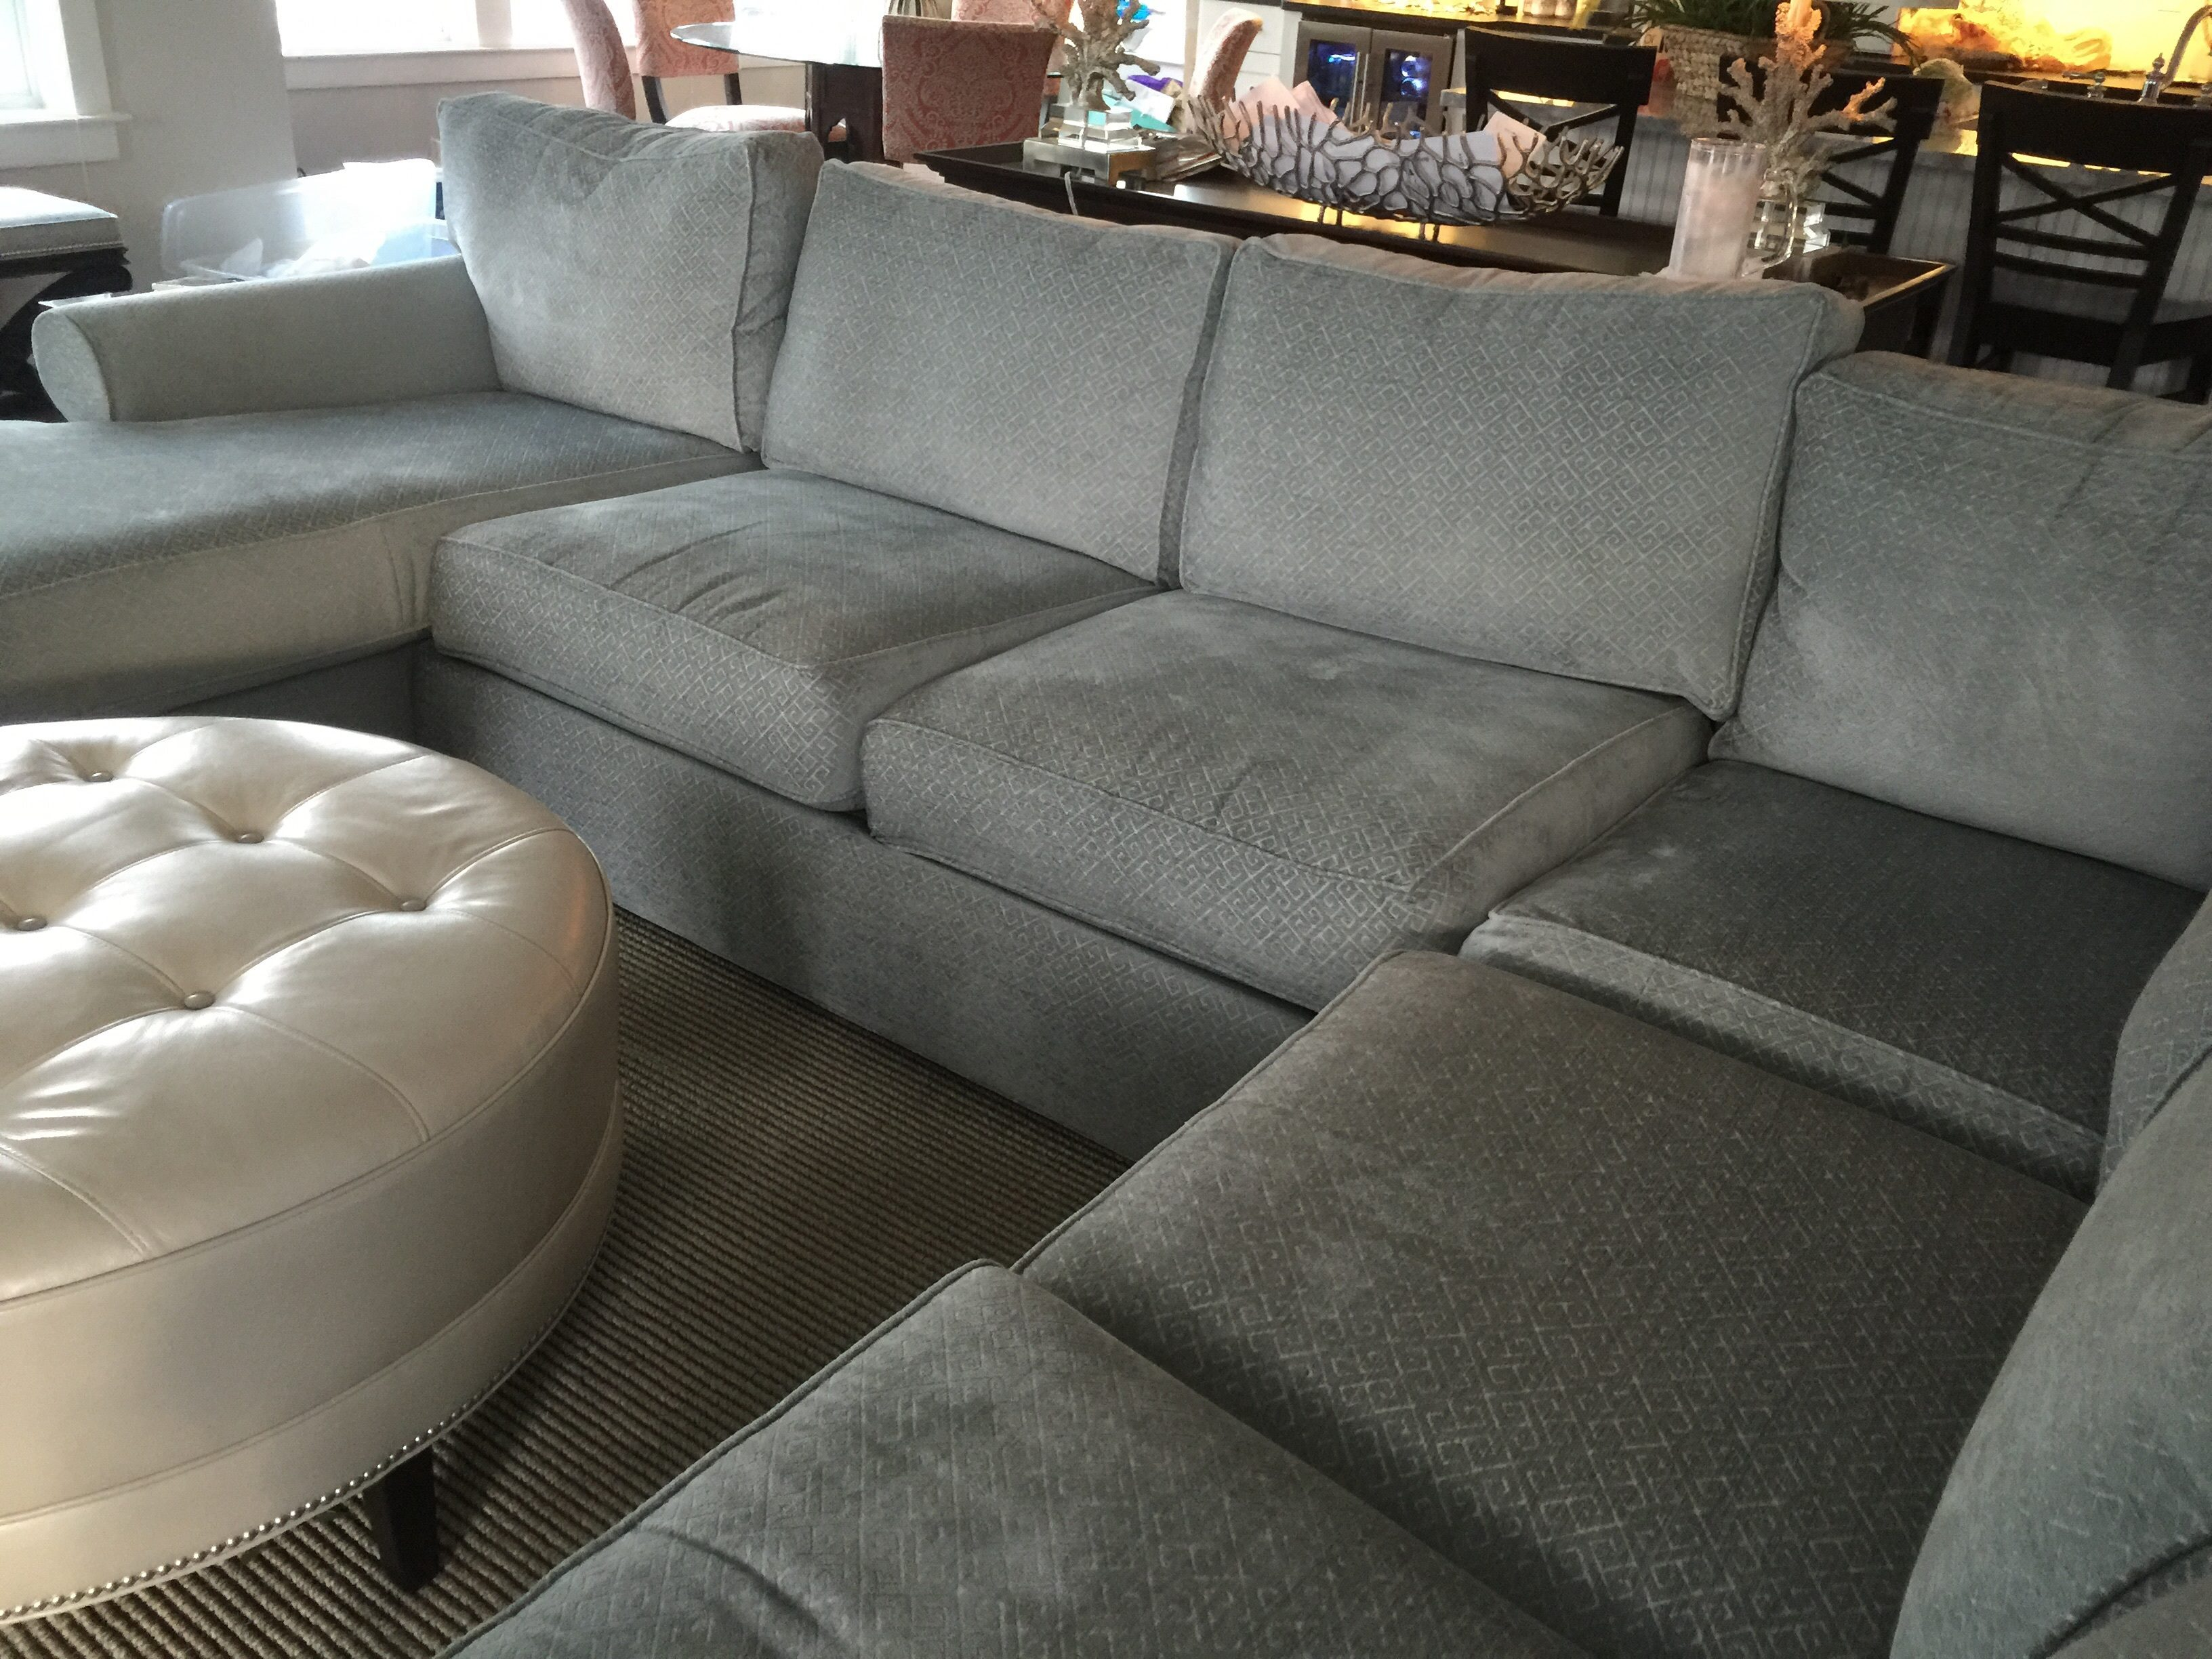 ■sofa bed Keep Up Ethan Allen Sofa Bed Whats So Horrible About